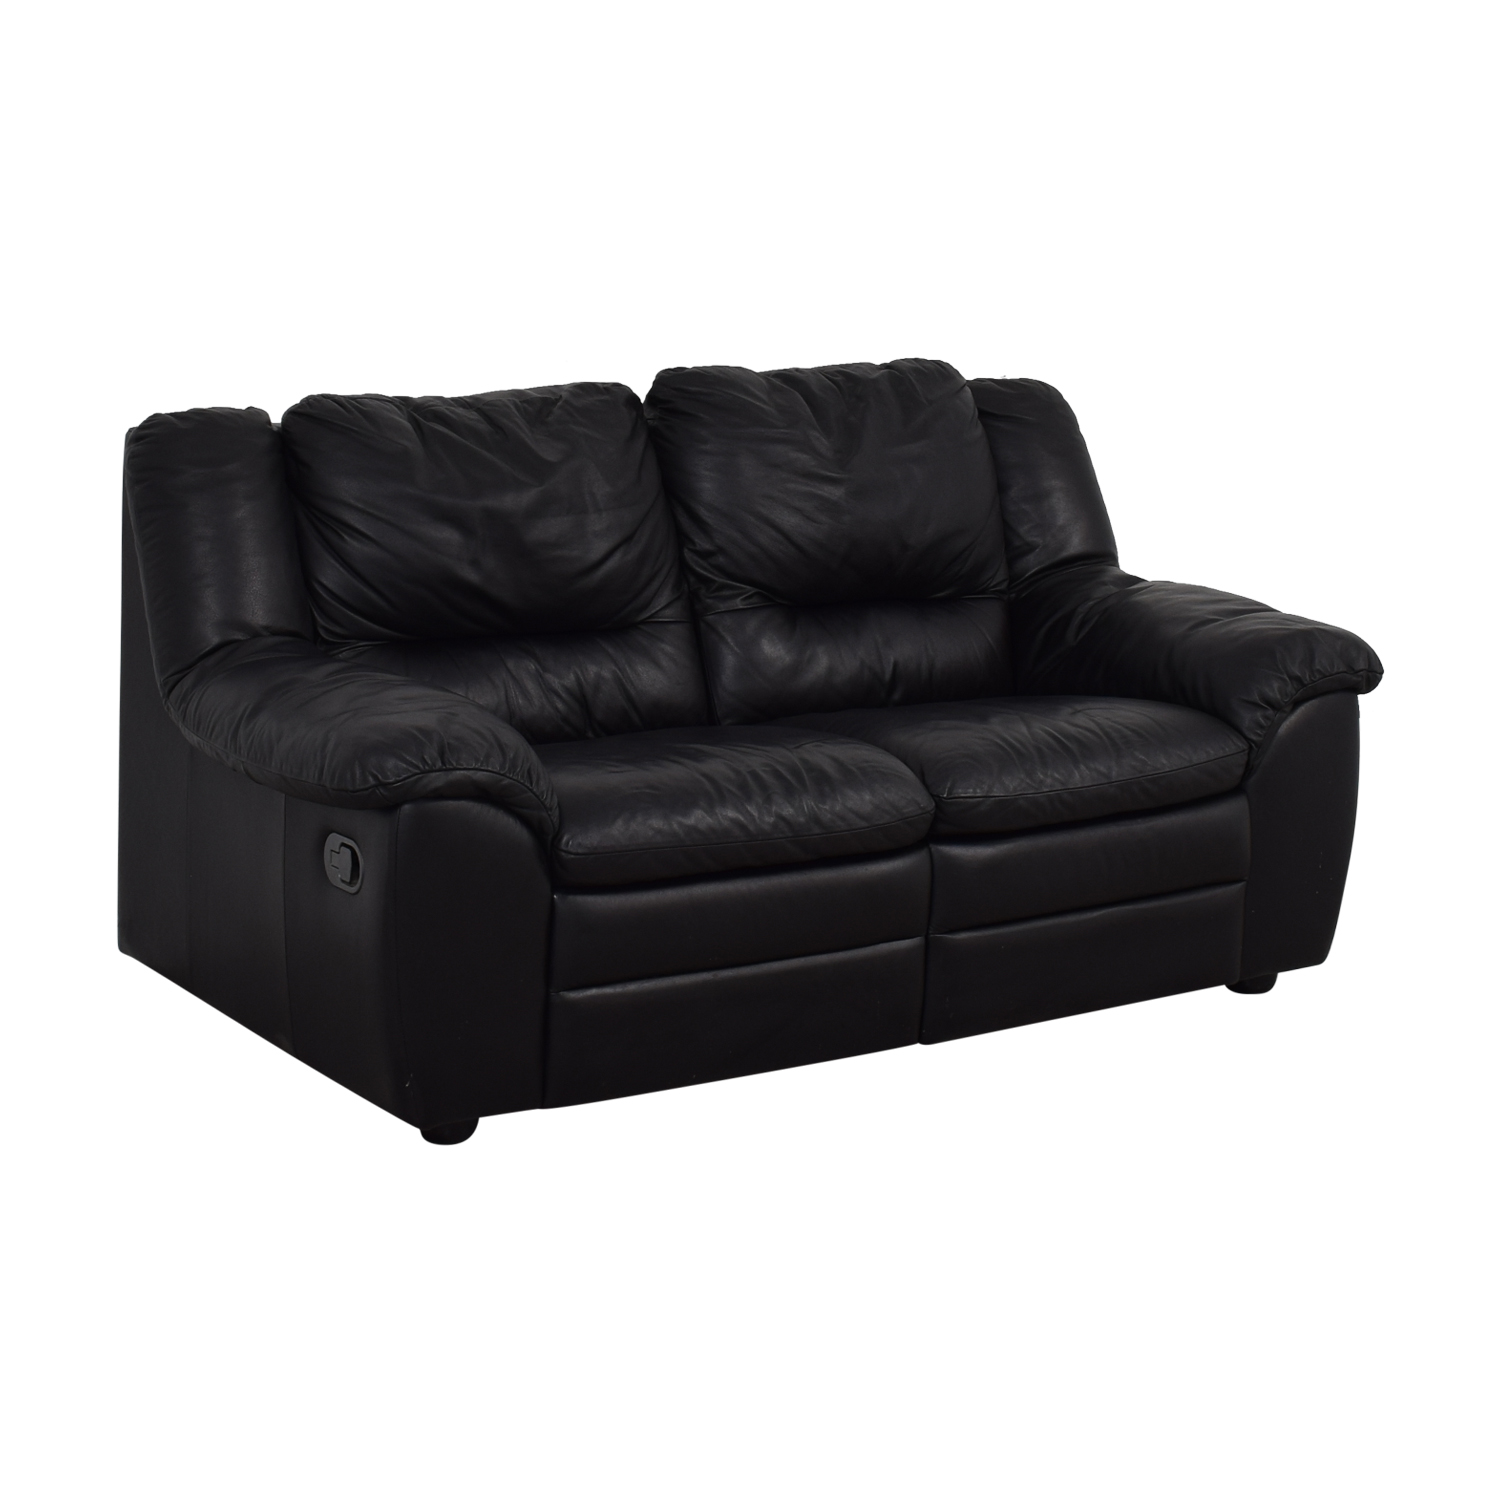 buy Natuzzi Black Leather Two-Cushion Recliner Loveseat Natuzzi Sofas